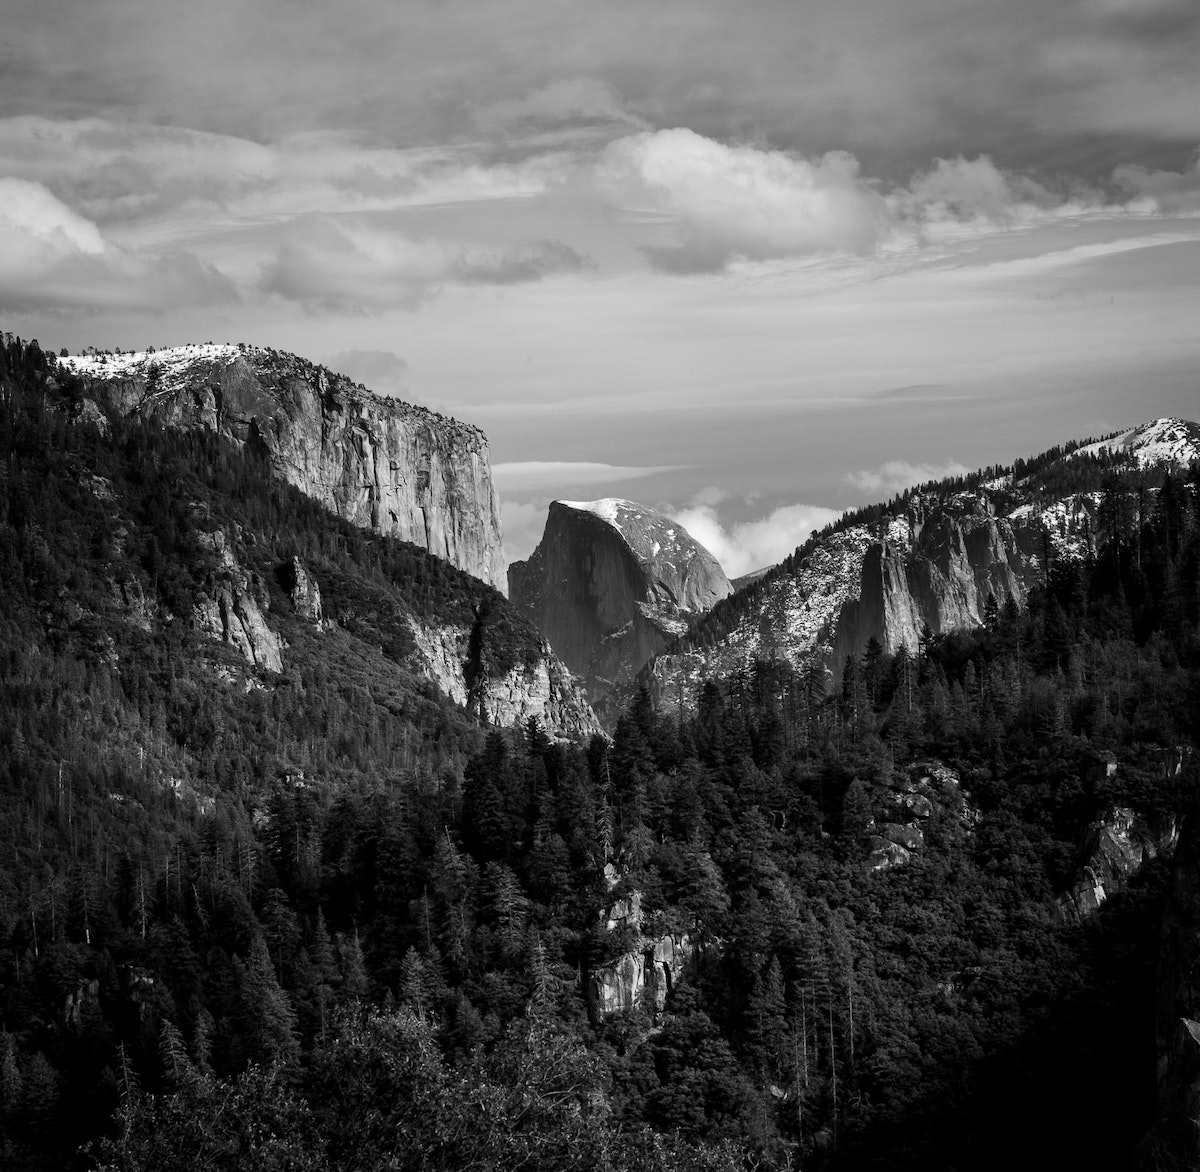 Best photography locations in yosemite national park. Where is the half dome in yosemite national park